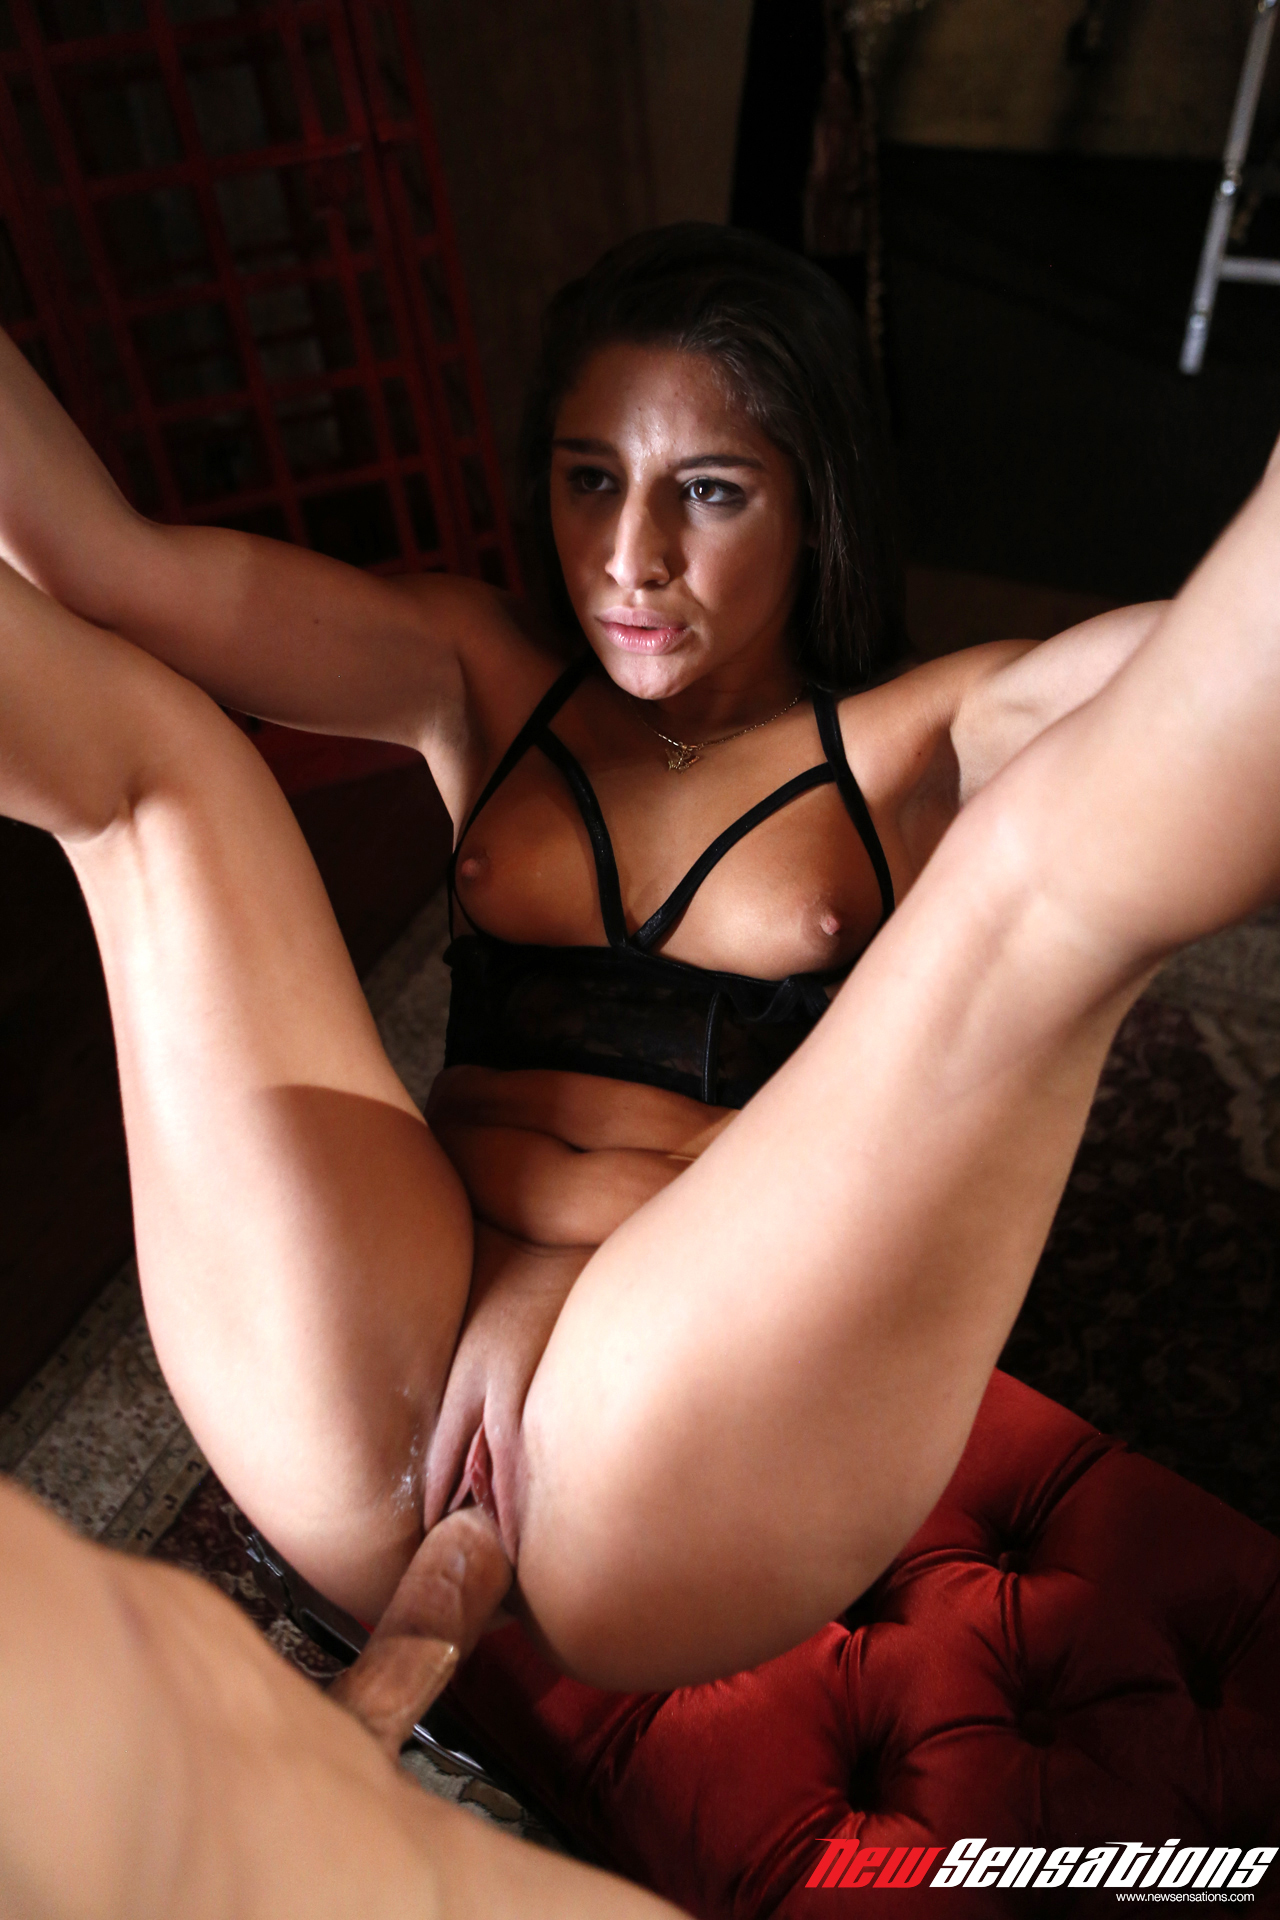 Hot girls tied up and fucked